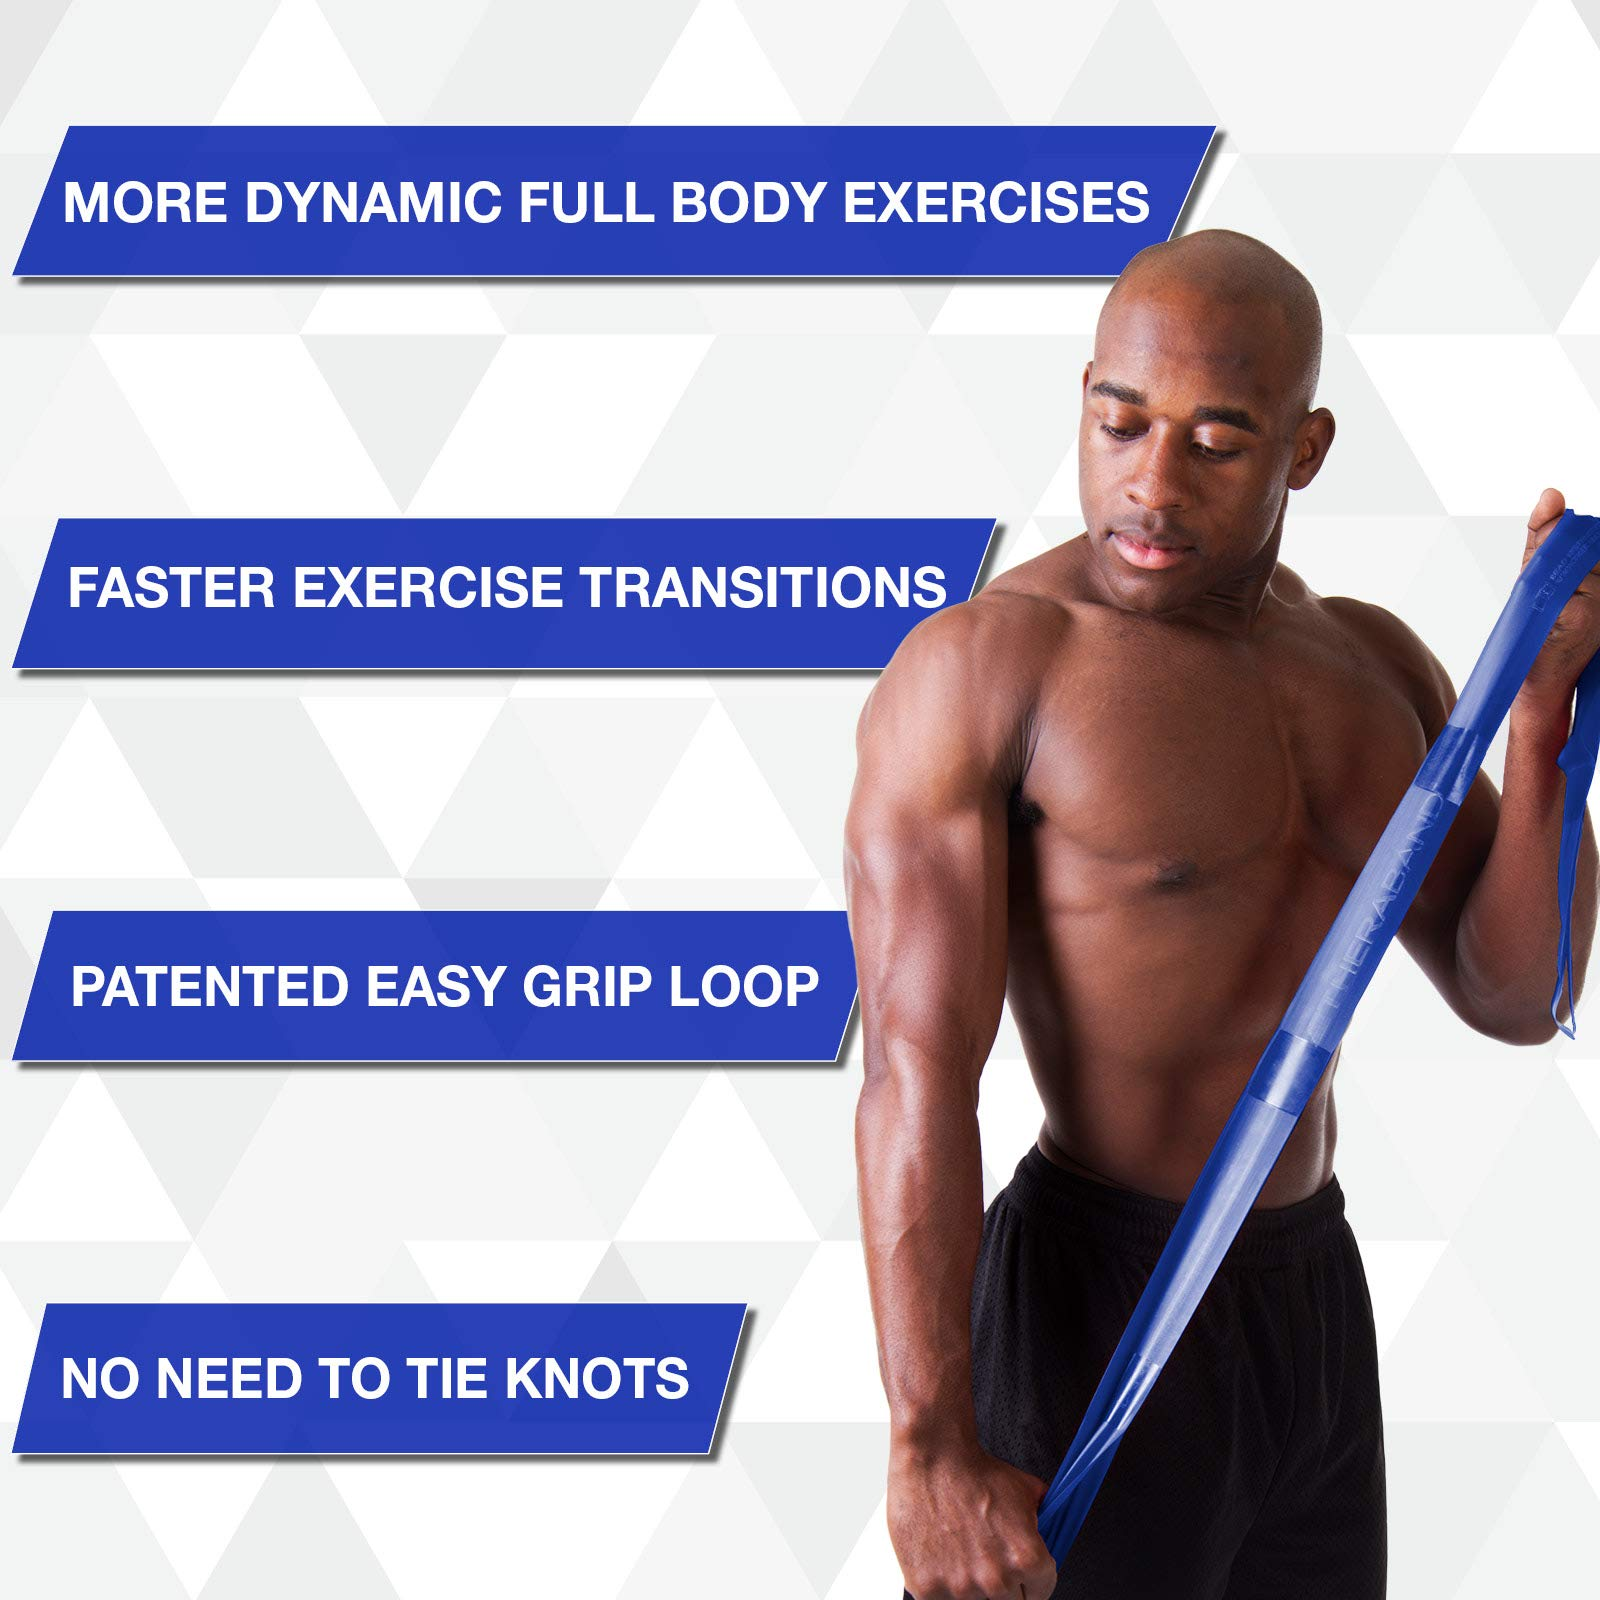 TheraBand CLX Resistance Band with Loops, Fitness Band for Home Exercise and Full Body Workouts, Portable Gym Equipment, Gift for Athletes, 25 Yard Dispenser, Blue Extra Heavy, Intermediate Level 2 by TheraBand (Image #3)